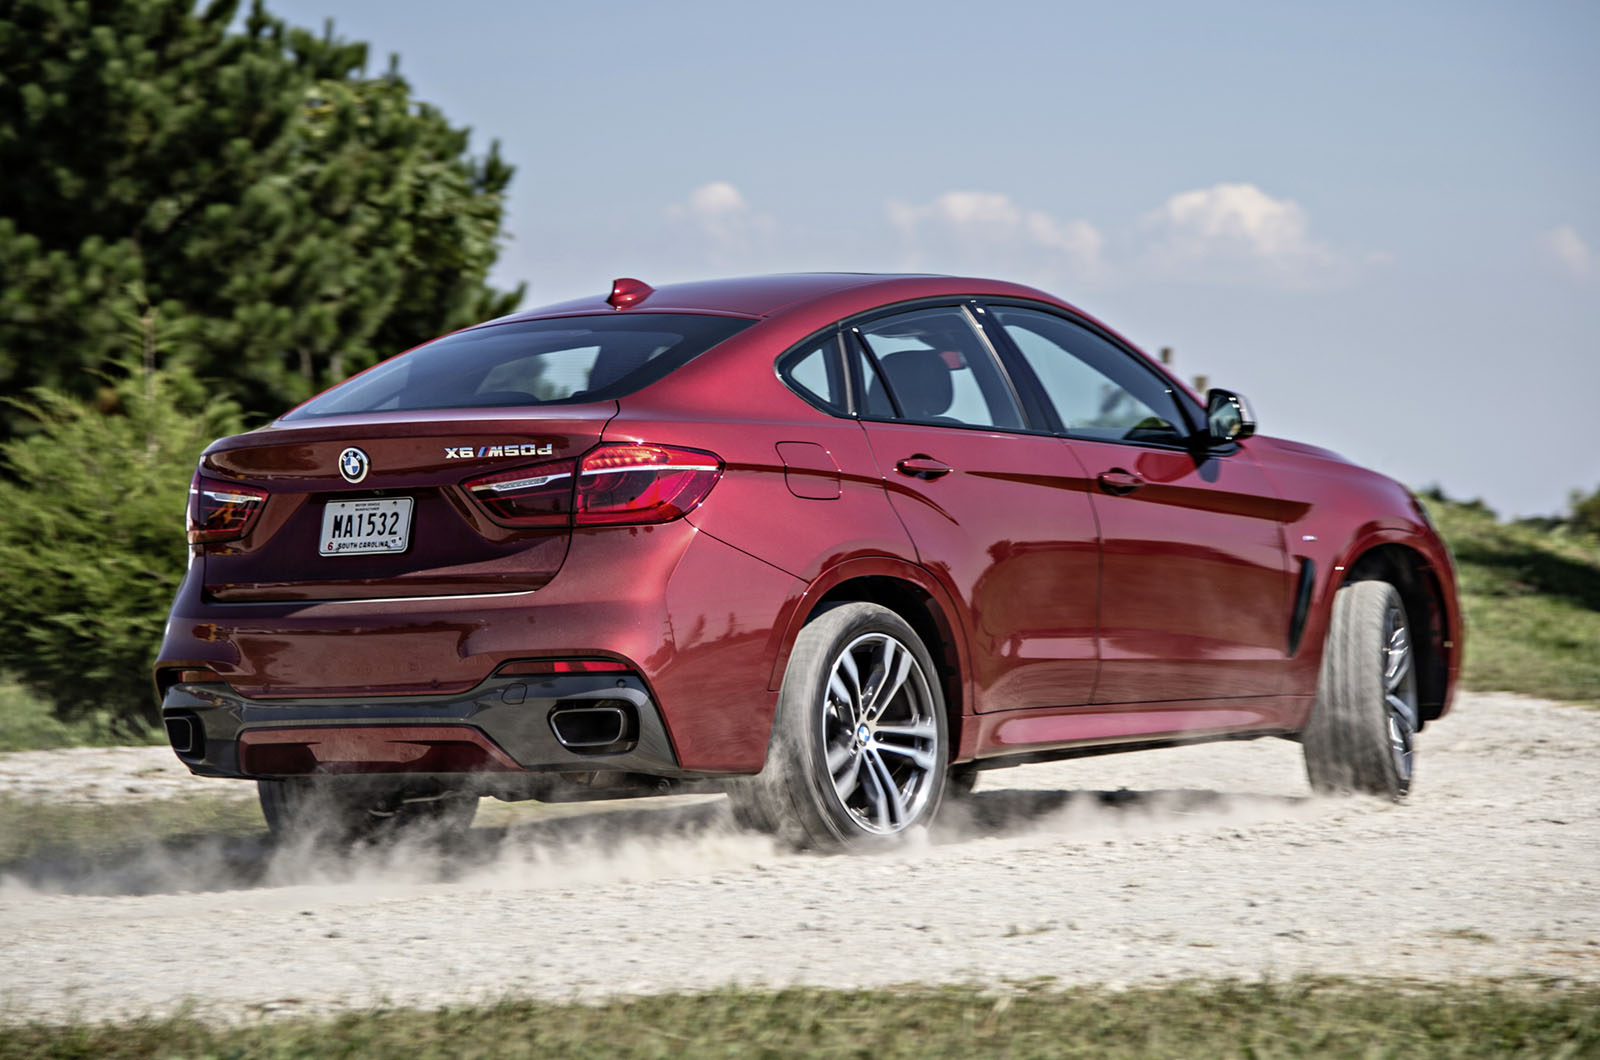 bmw x6 m50d first drive review autocar. Black Bedroom Furniture Sets. Home Design Ideas